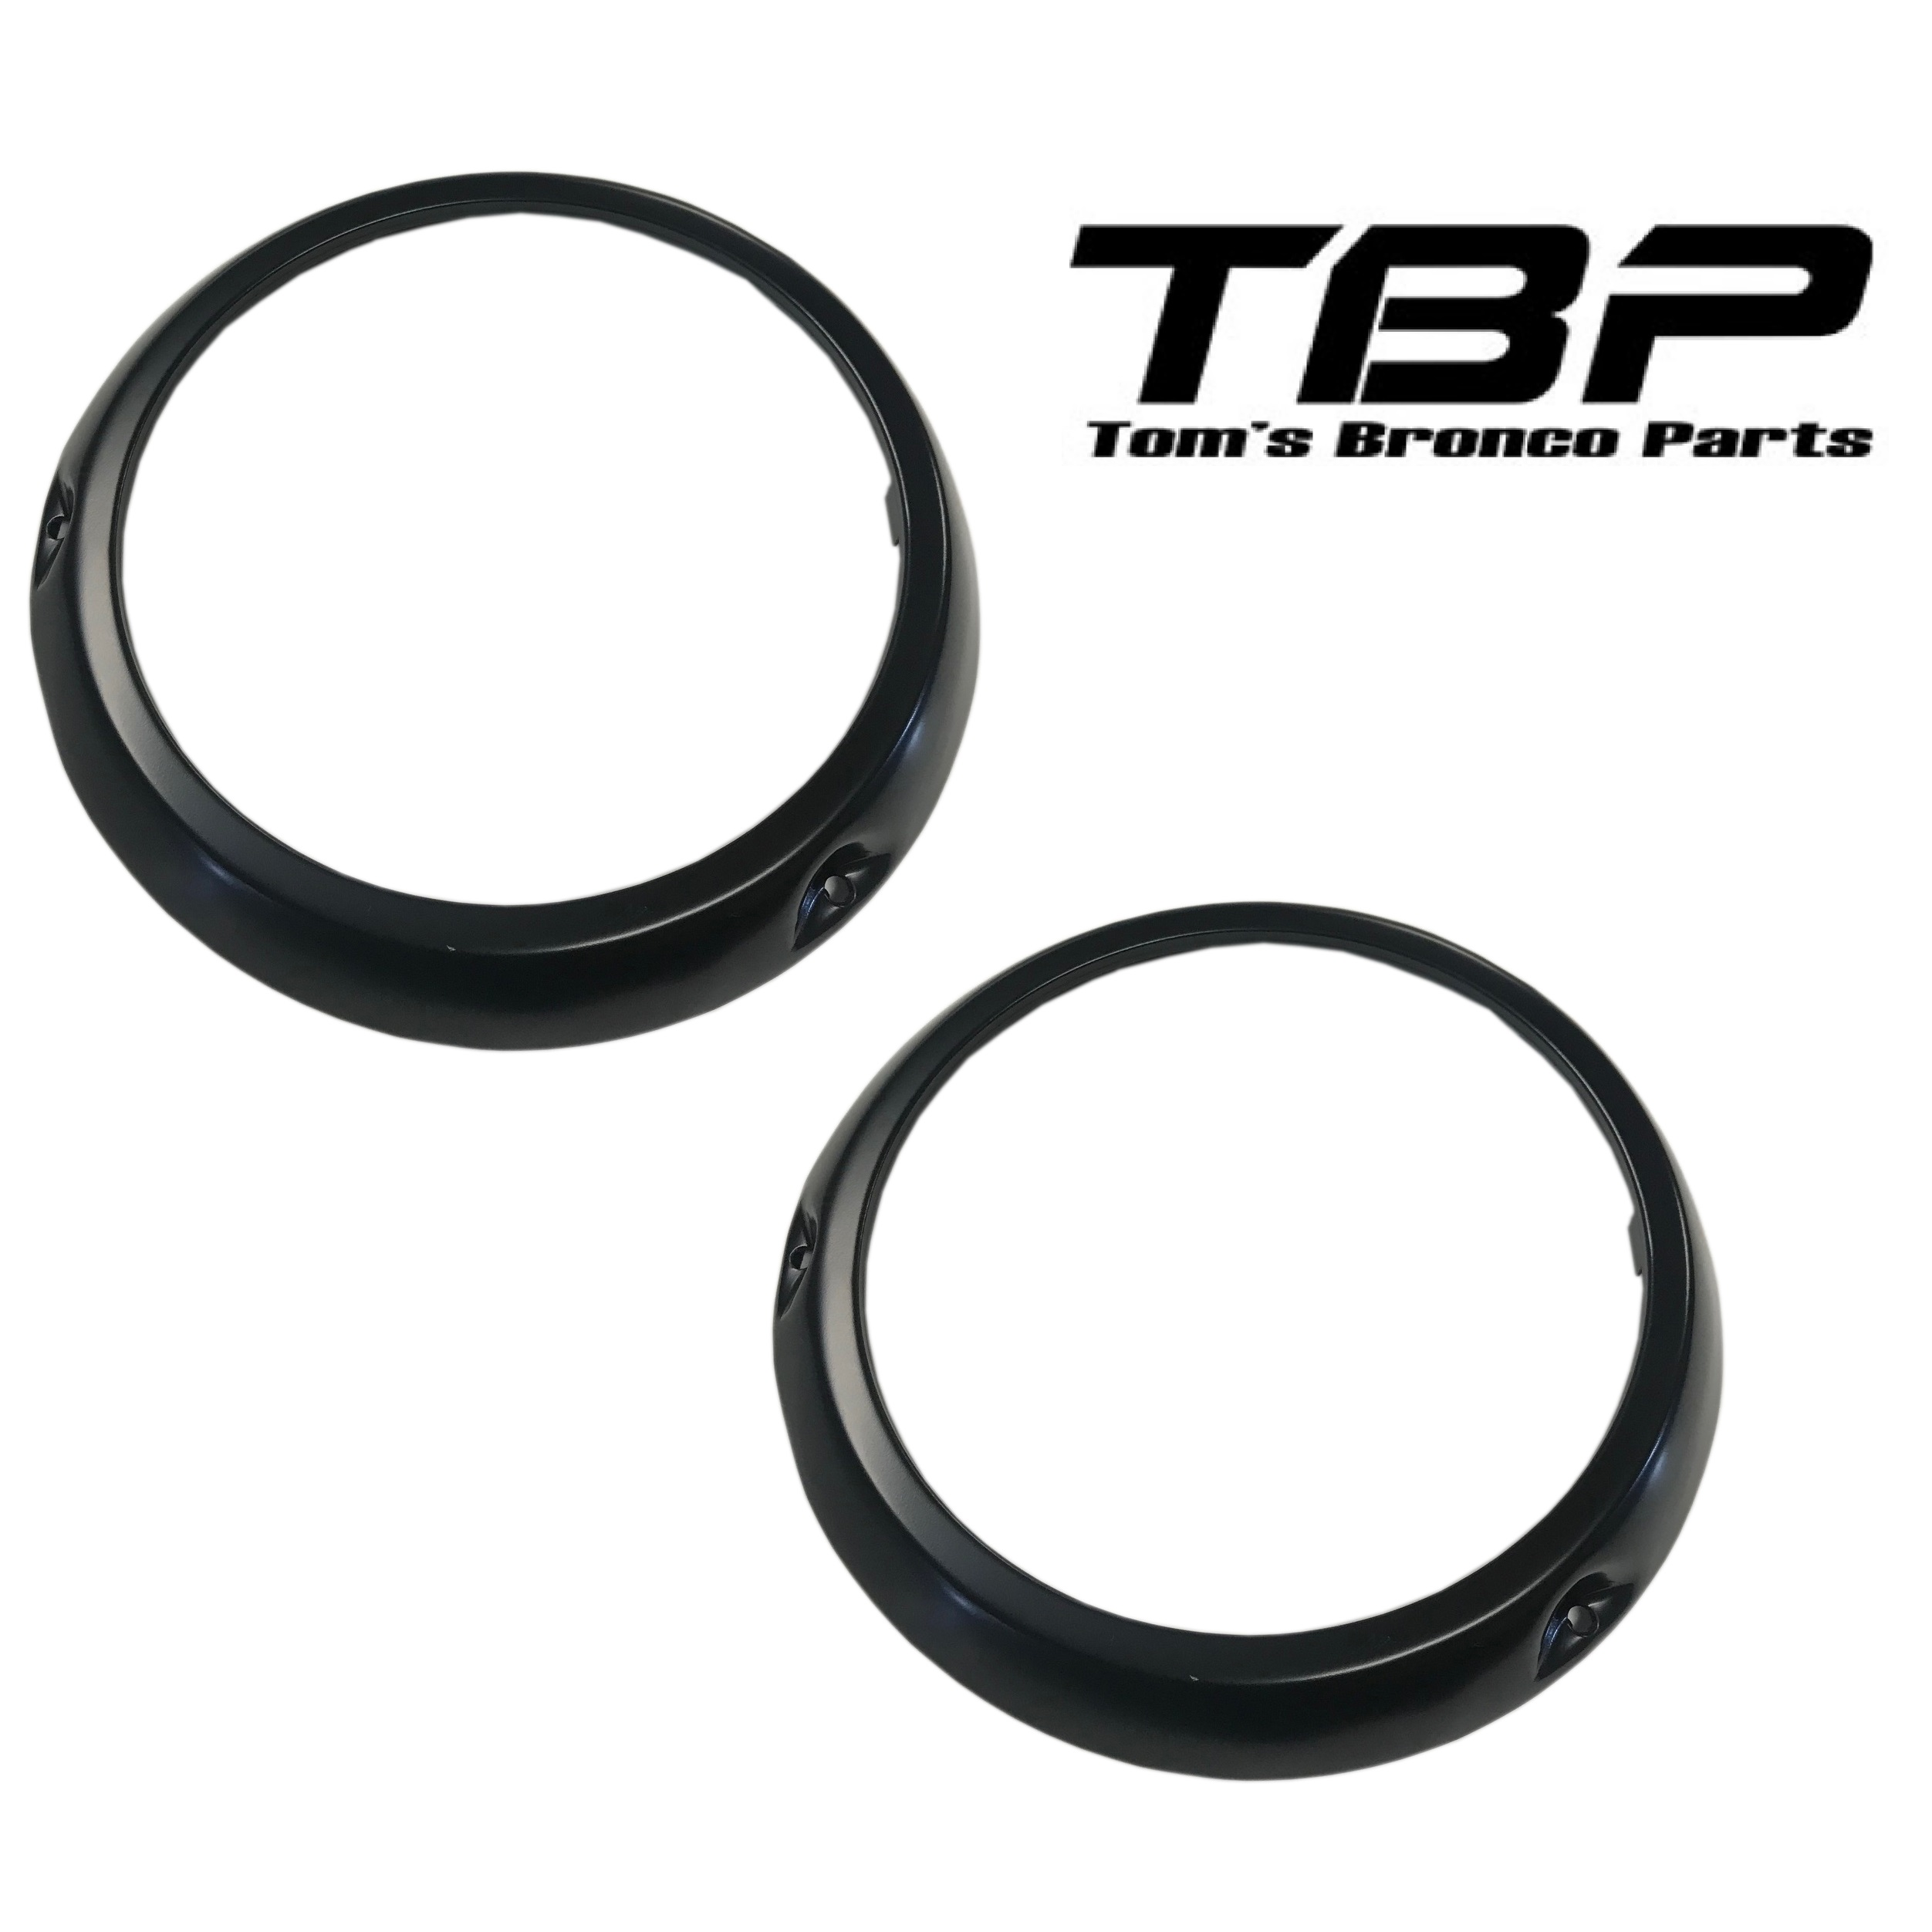 Black Headlight Bezel Rings, 66-70 Ford Bronco, pair